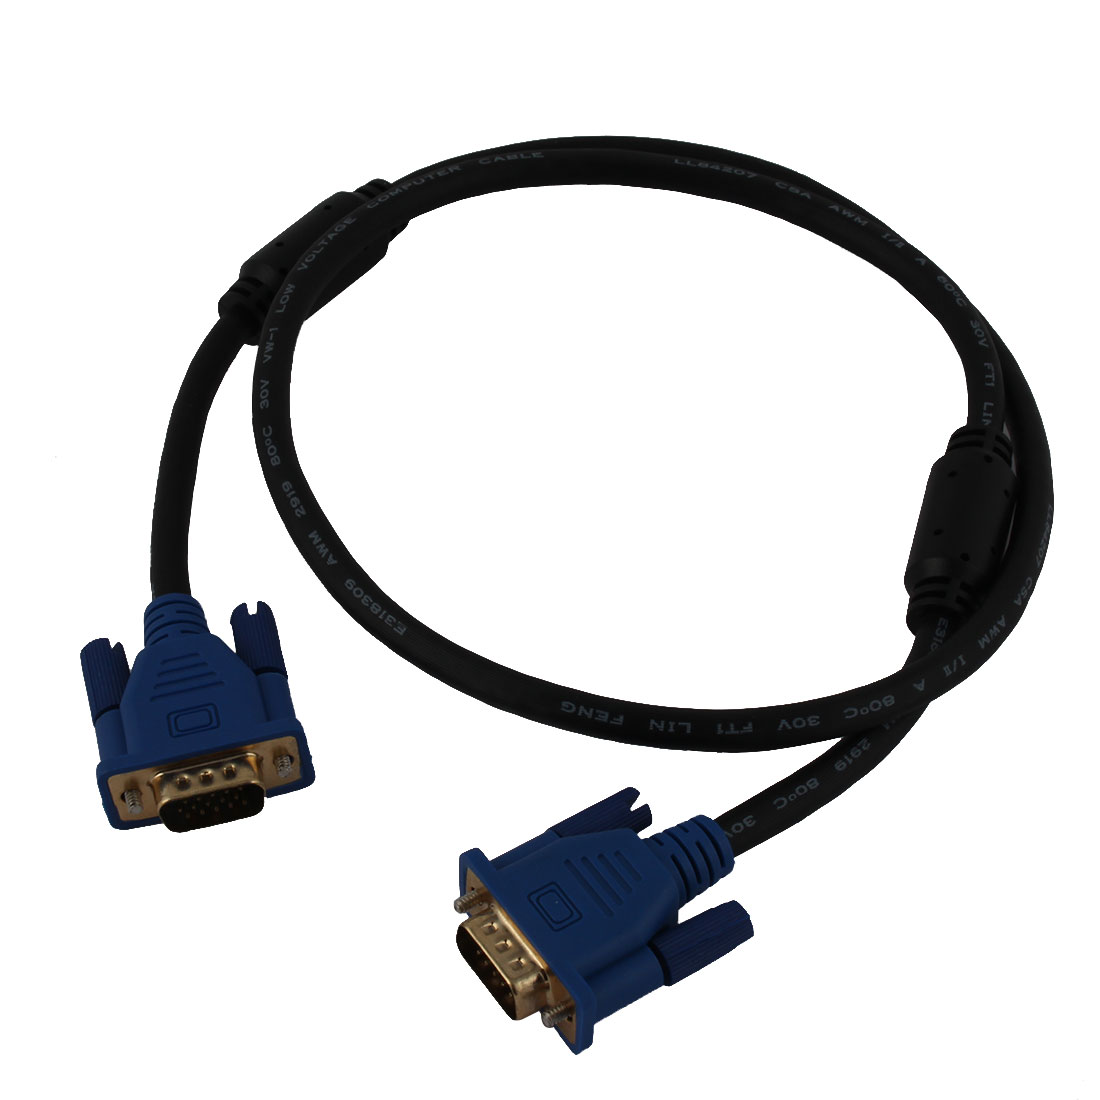 LCD Computer Monitor VGA Male to Male 15 Pin Cable Cord Blue Black 90cm Length